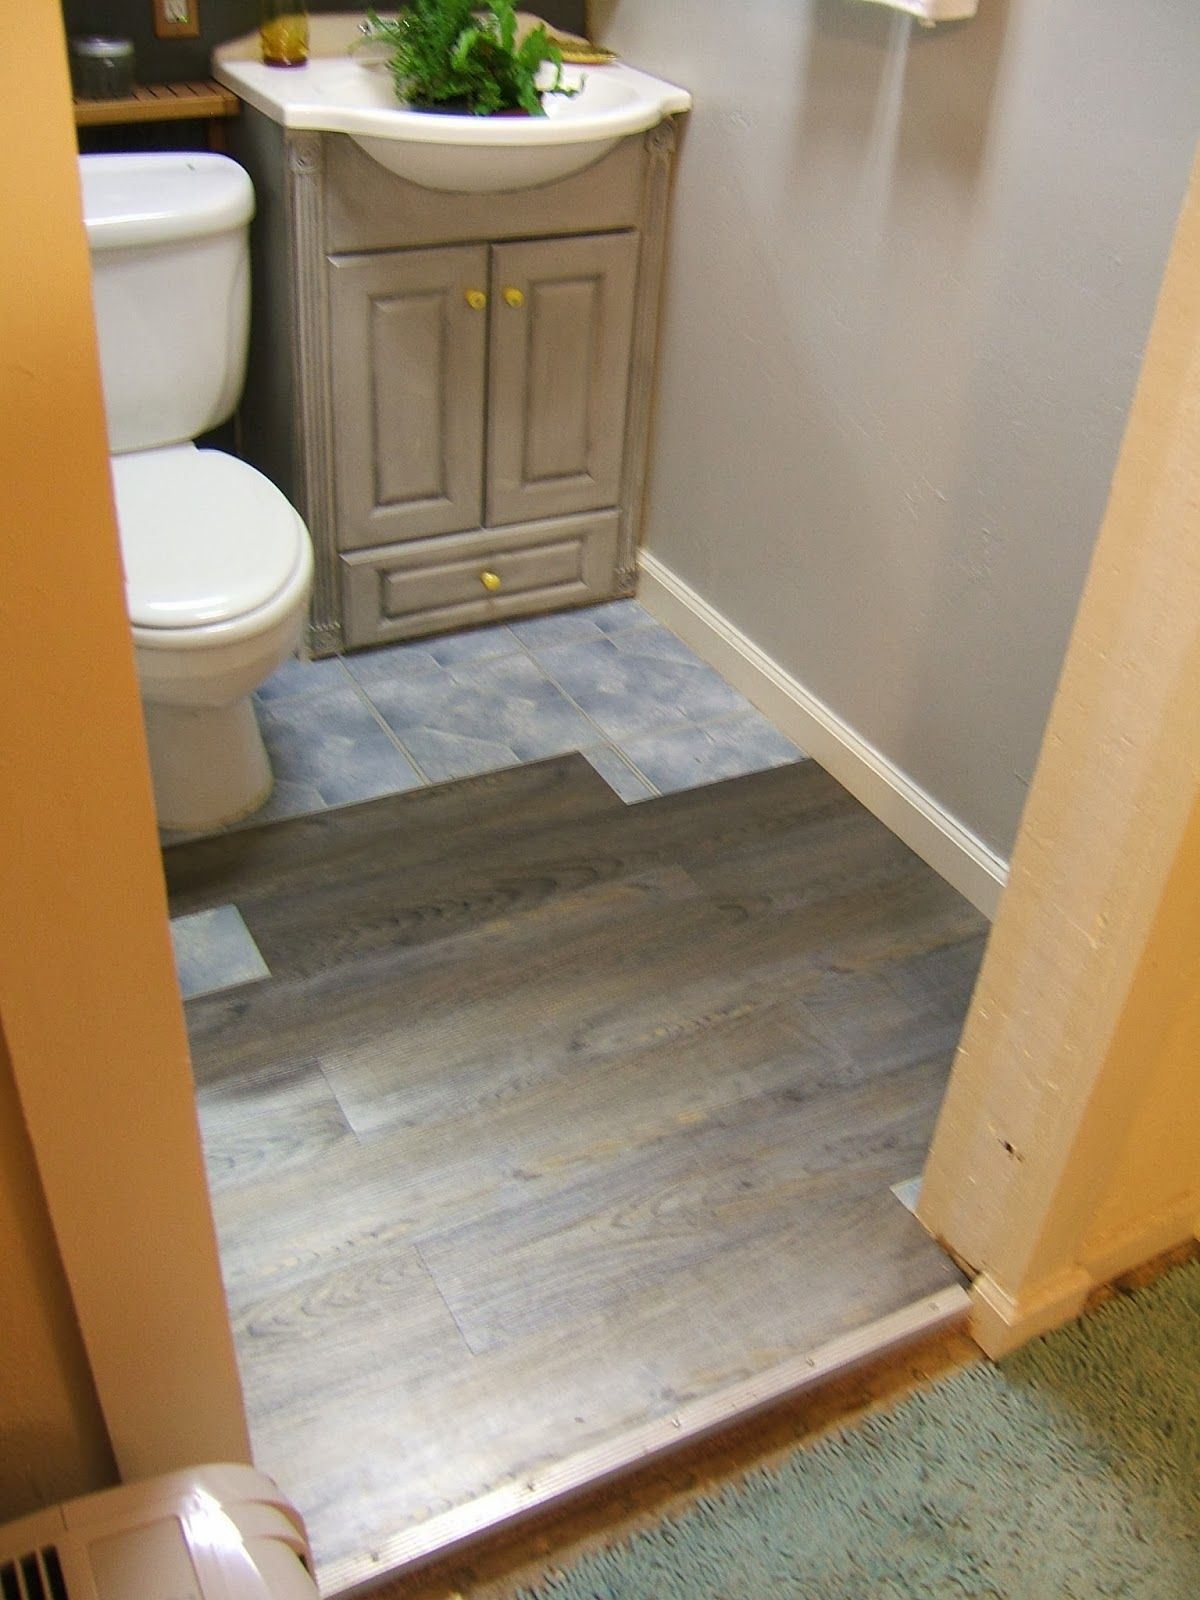 Flooring From Nine Red How To Cut Tile To Fit Around Toilet Easiest Way Practice With A